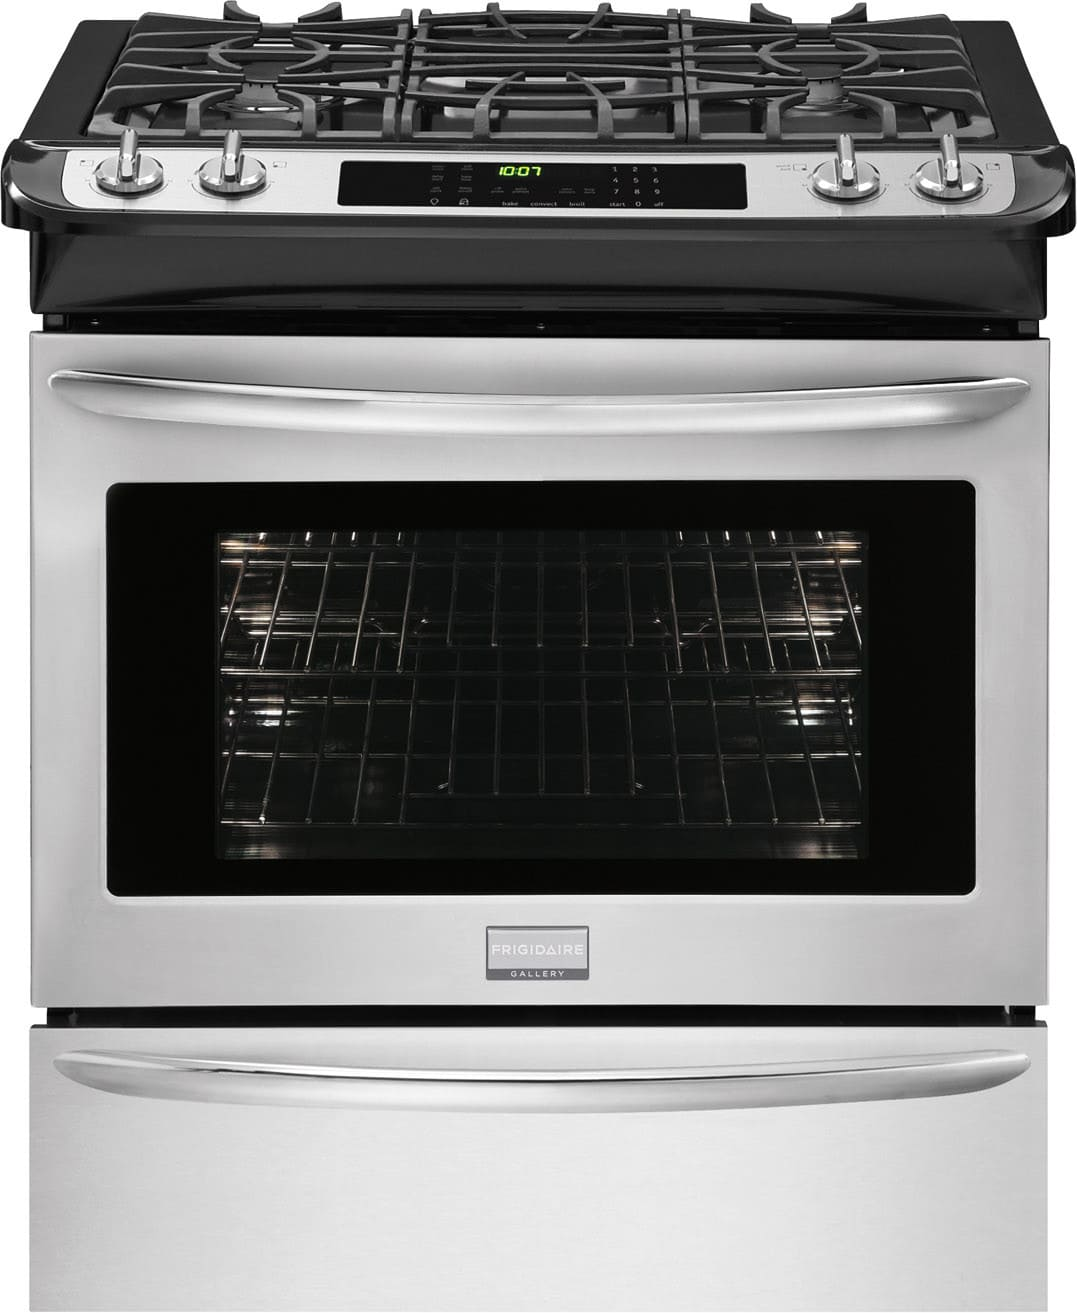 Frigidaire Fgds3065pf 30 Inch Slide In Dual Fuel Range